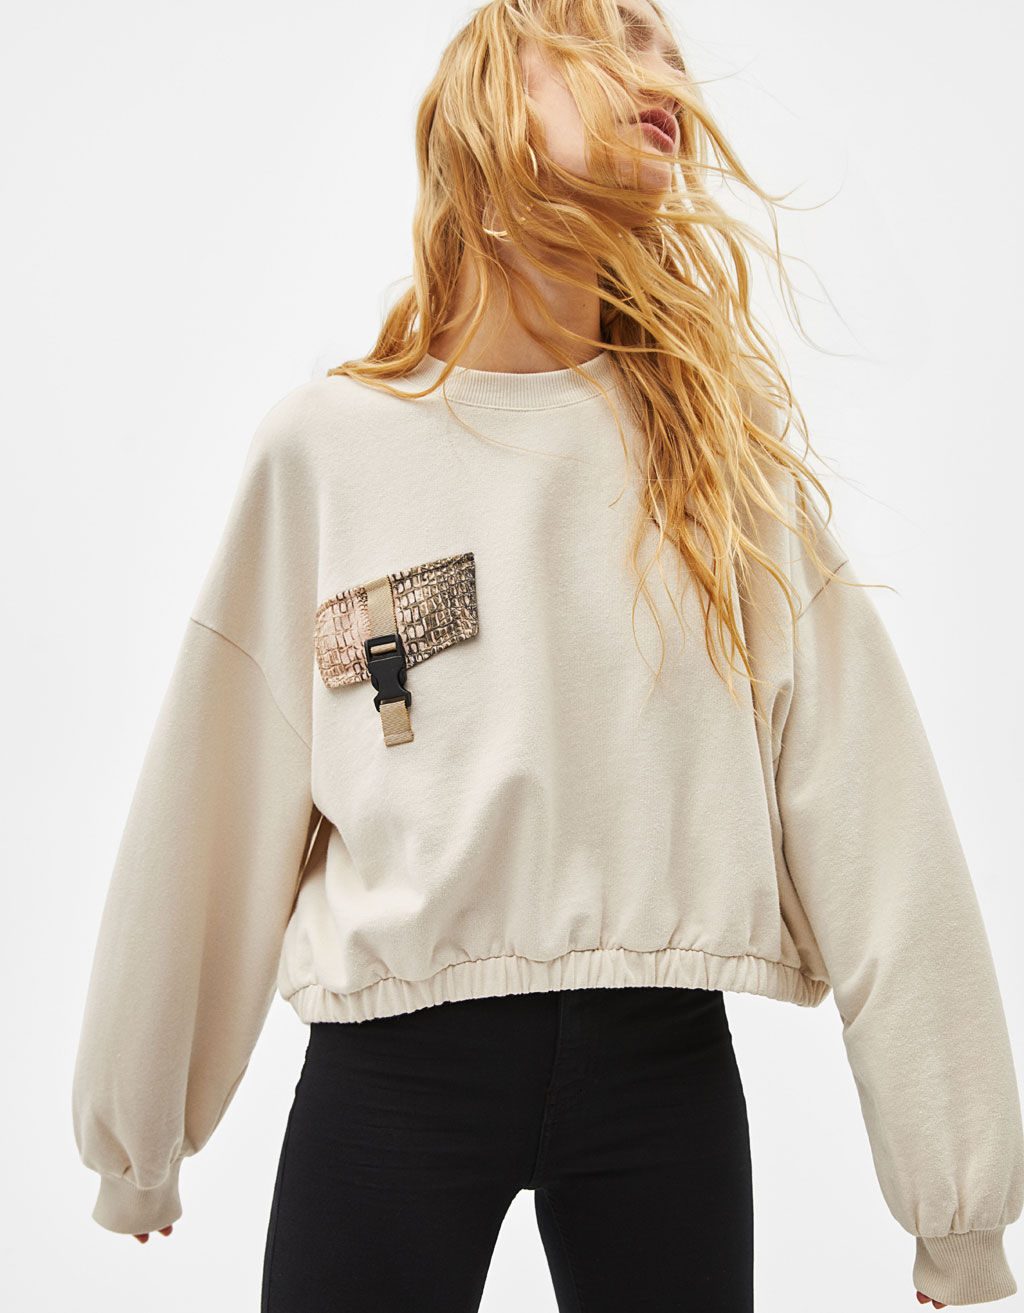 Sweatshirt with detail